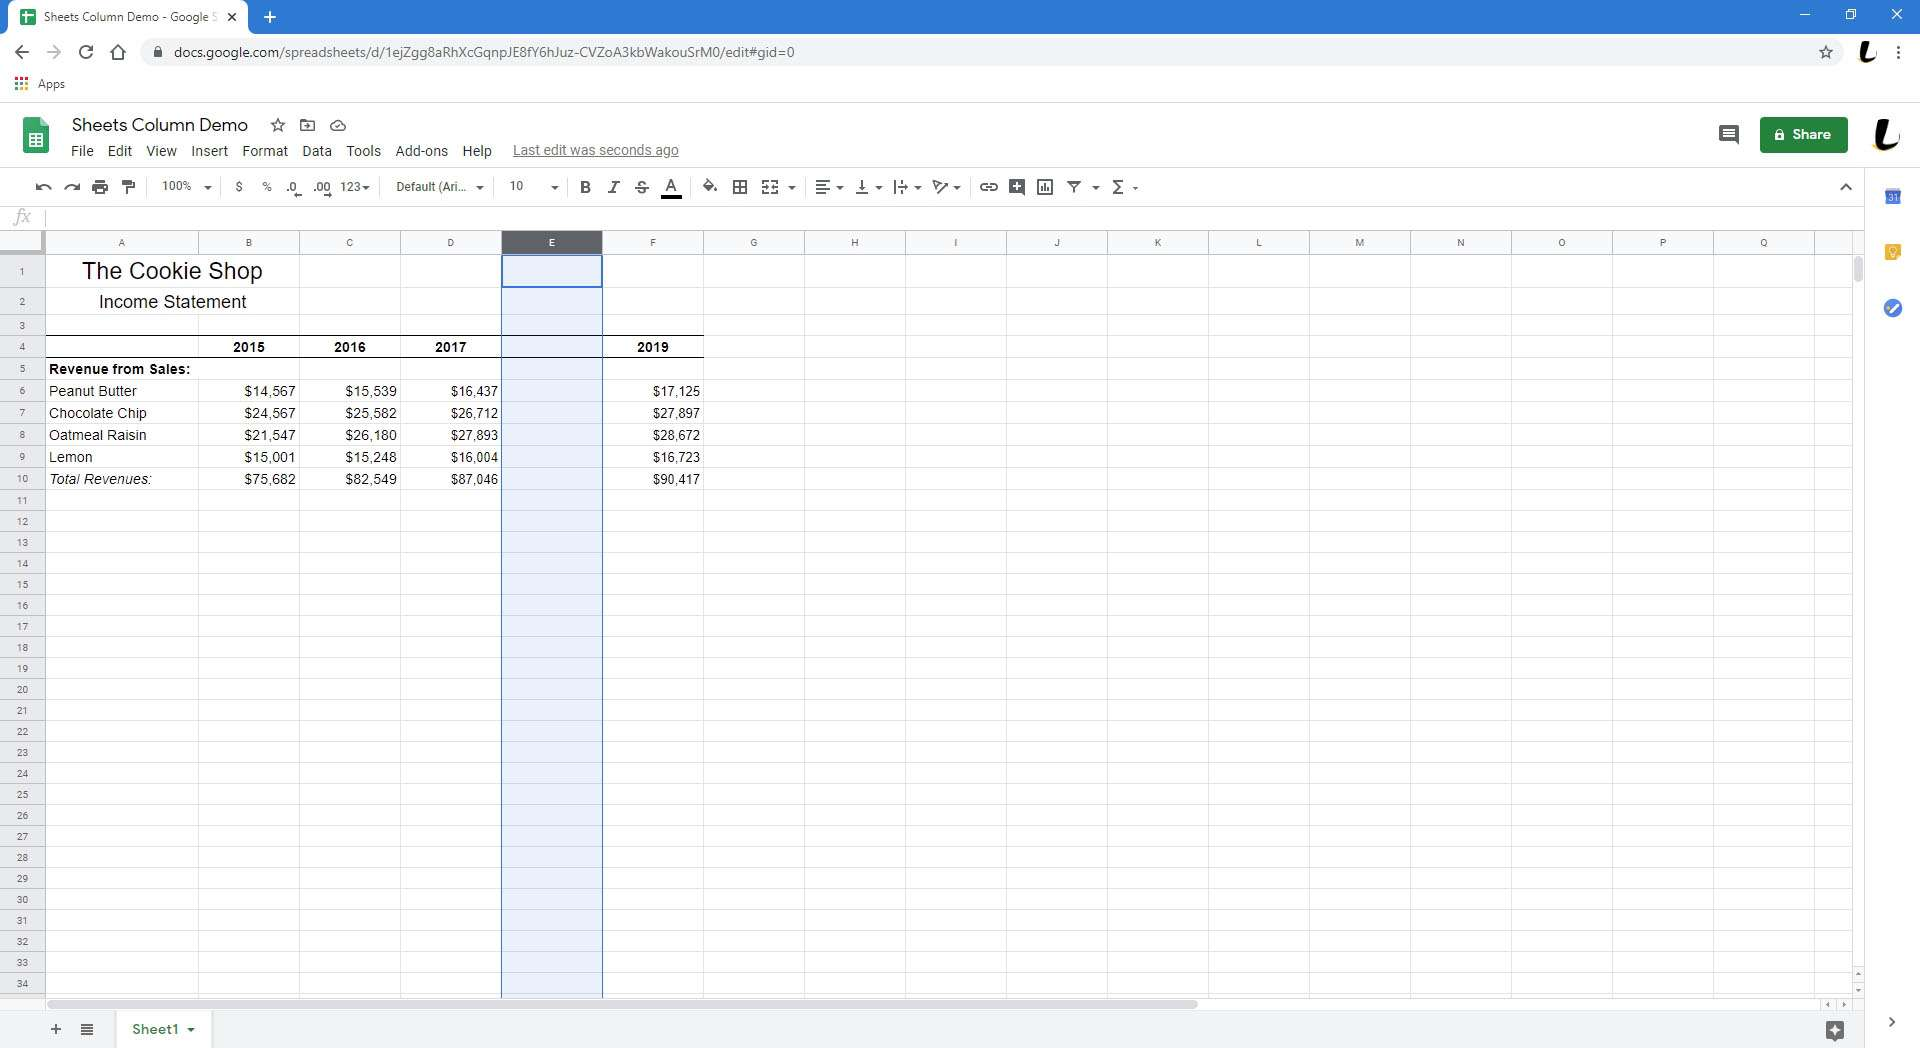 Google Sheets is showing a spreadsheet with a new column added.